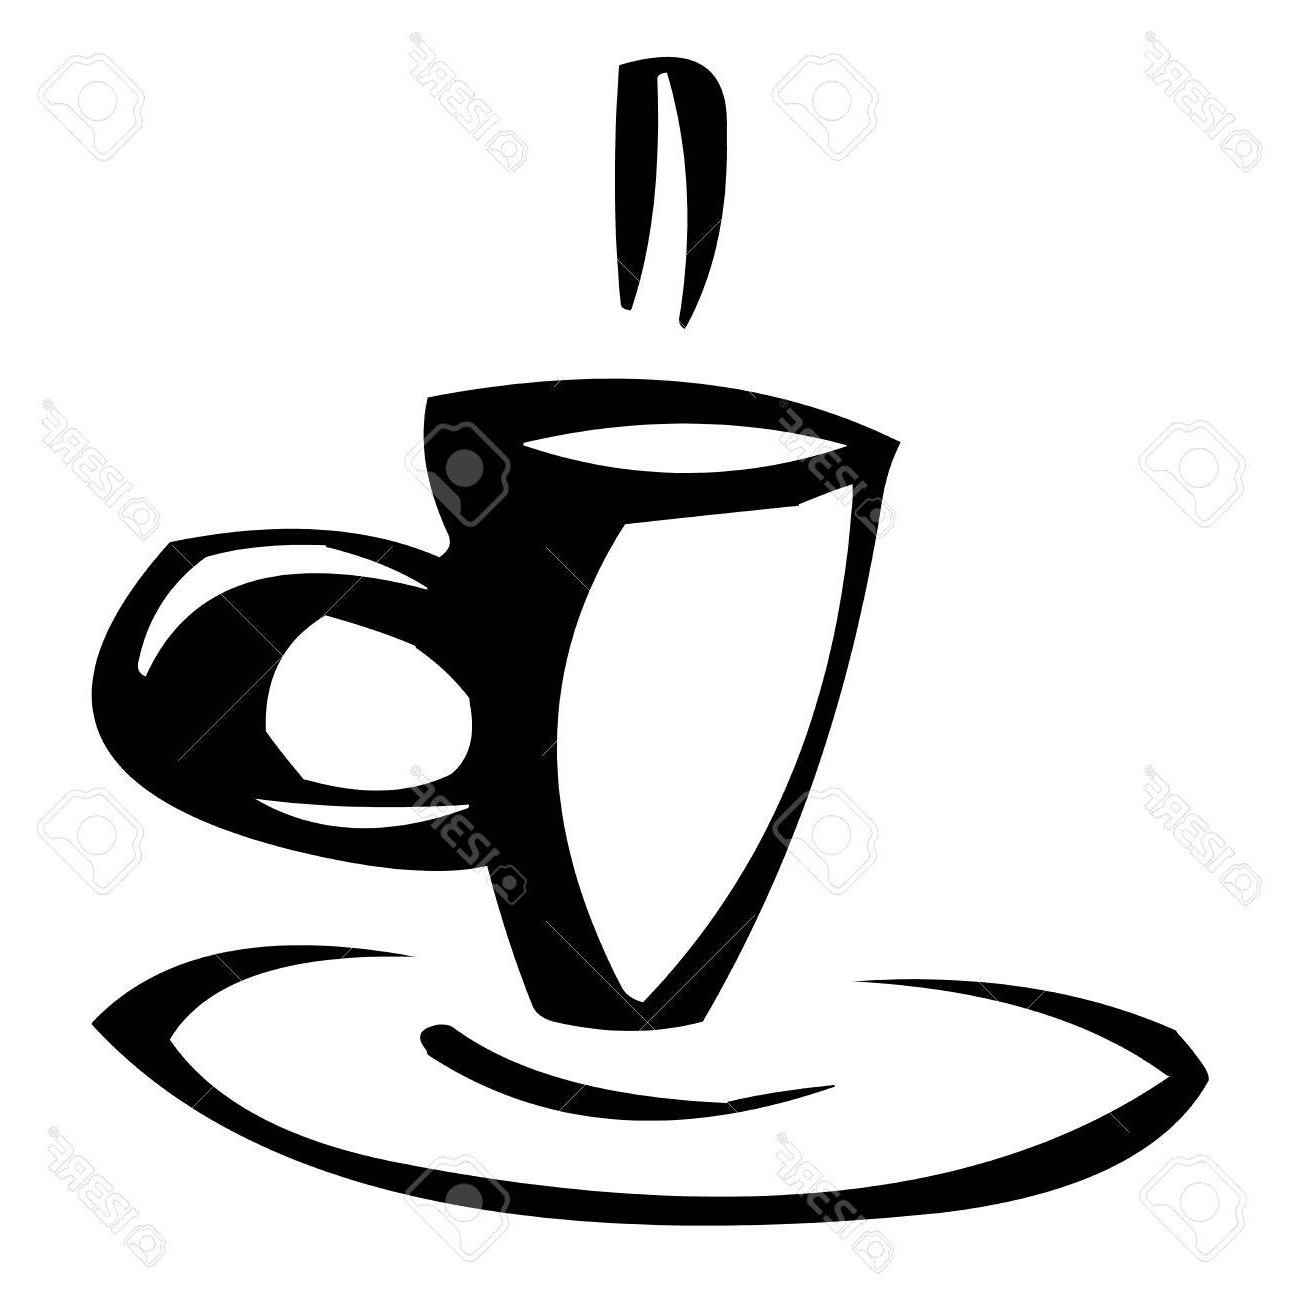 Free coffee clipart graphics. Best cup clip art